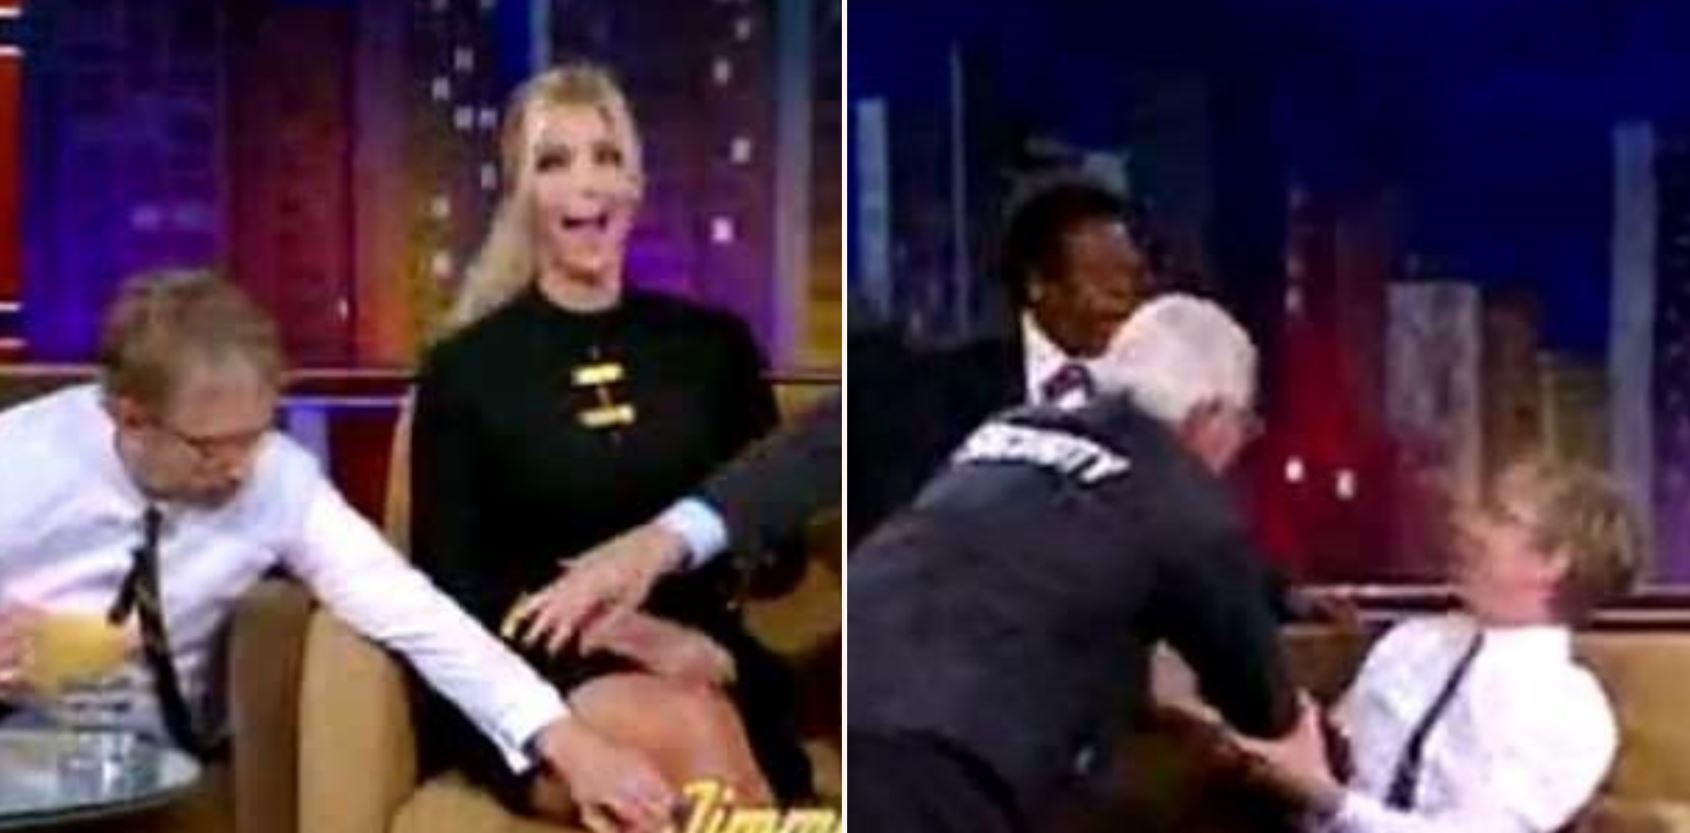 The moment Andy Dick had to be removed from The Jimmy Kimmel Show for groping Ivanka Trump